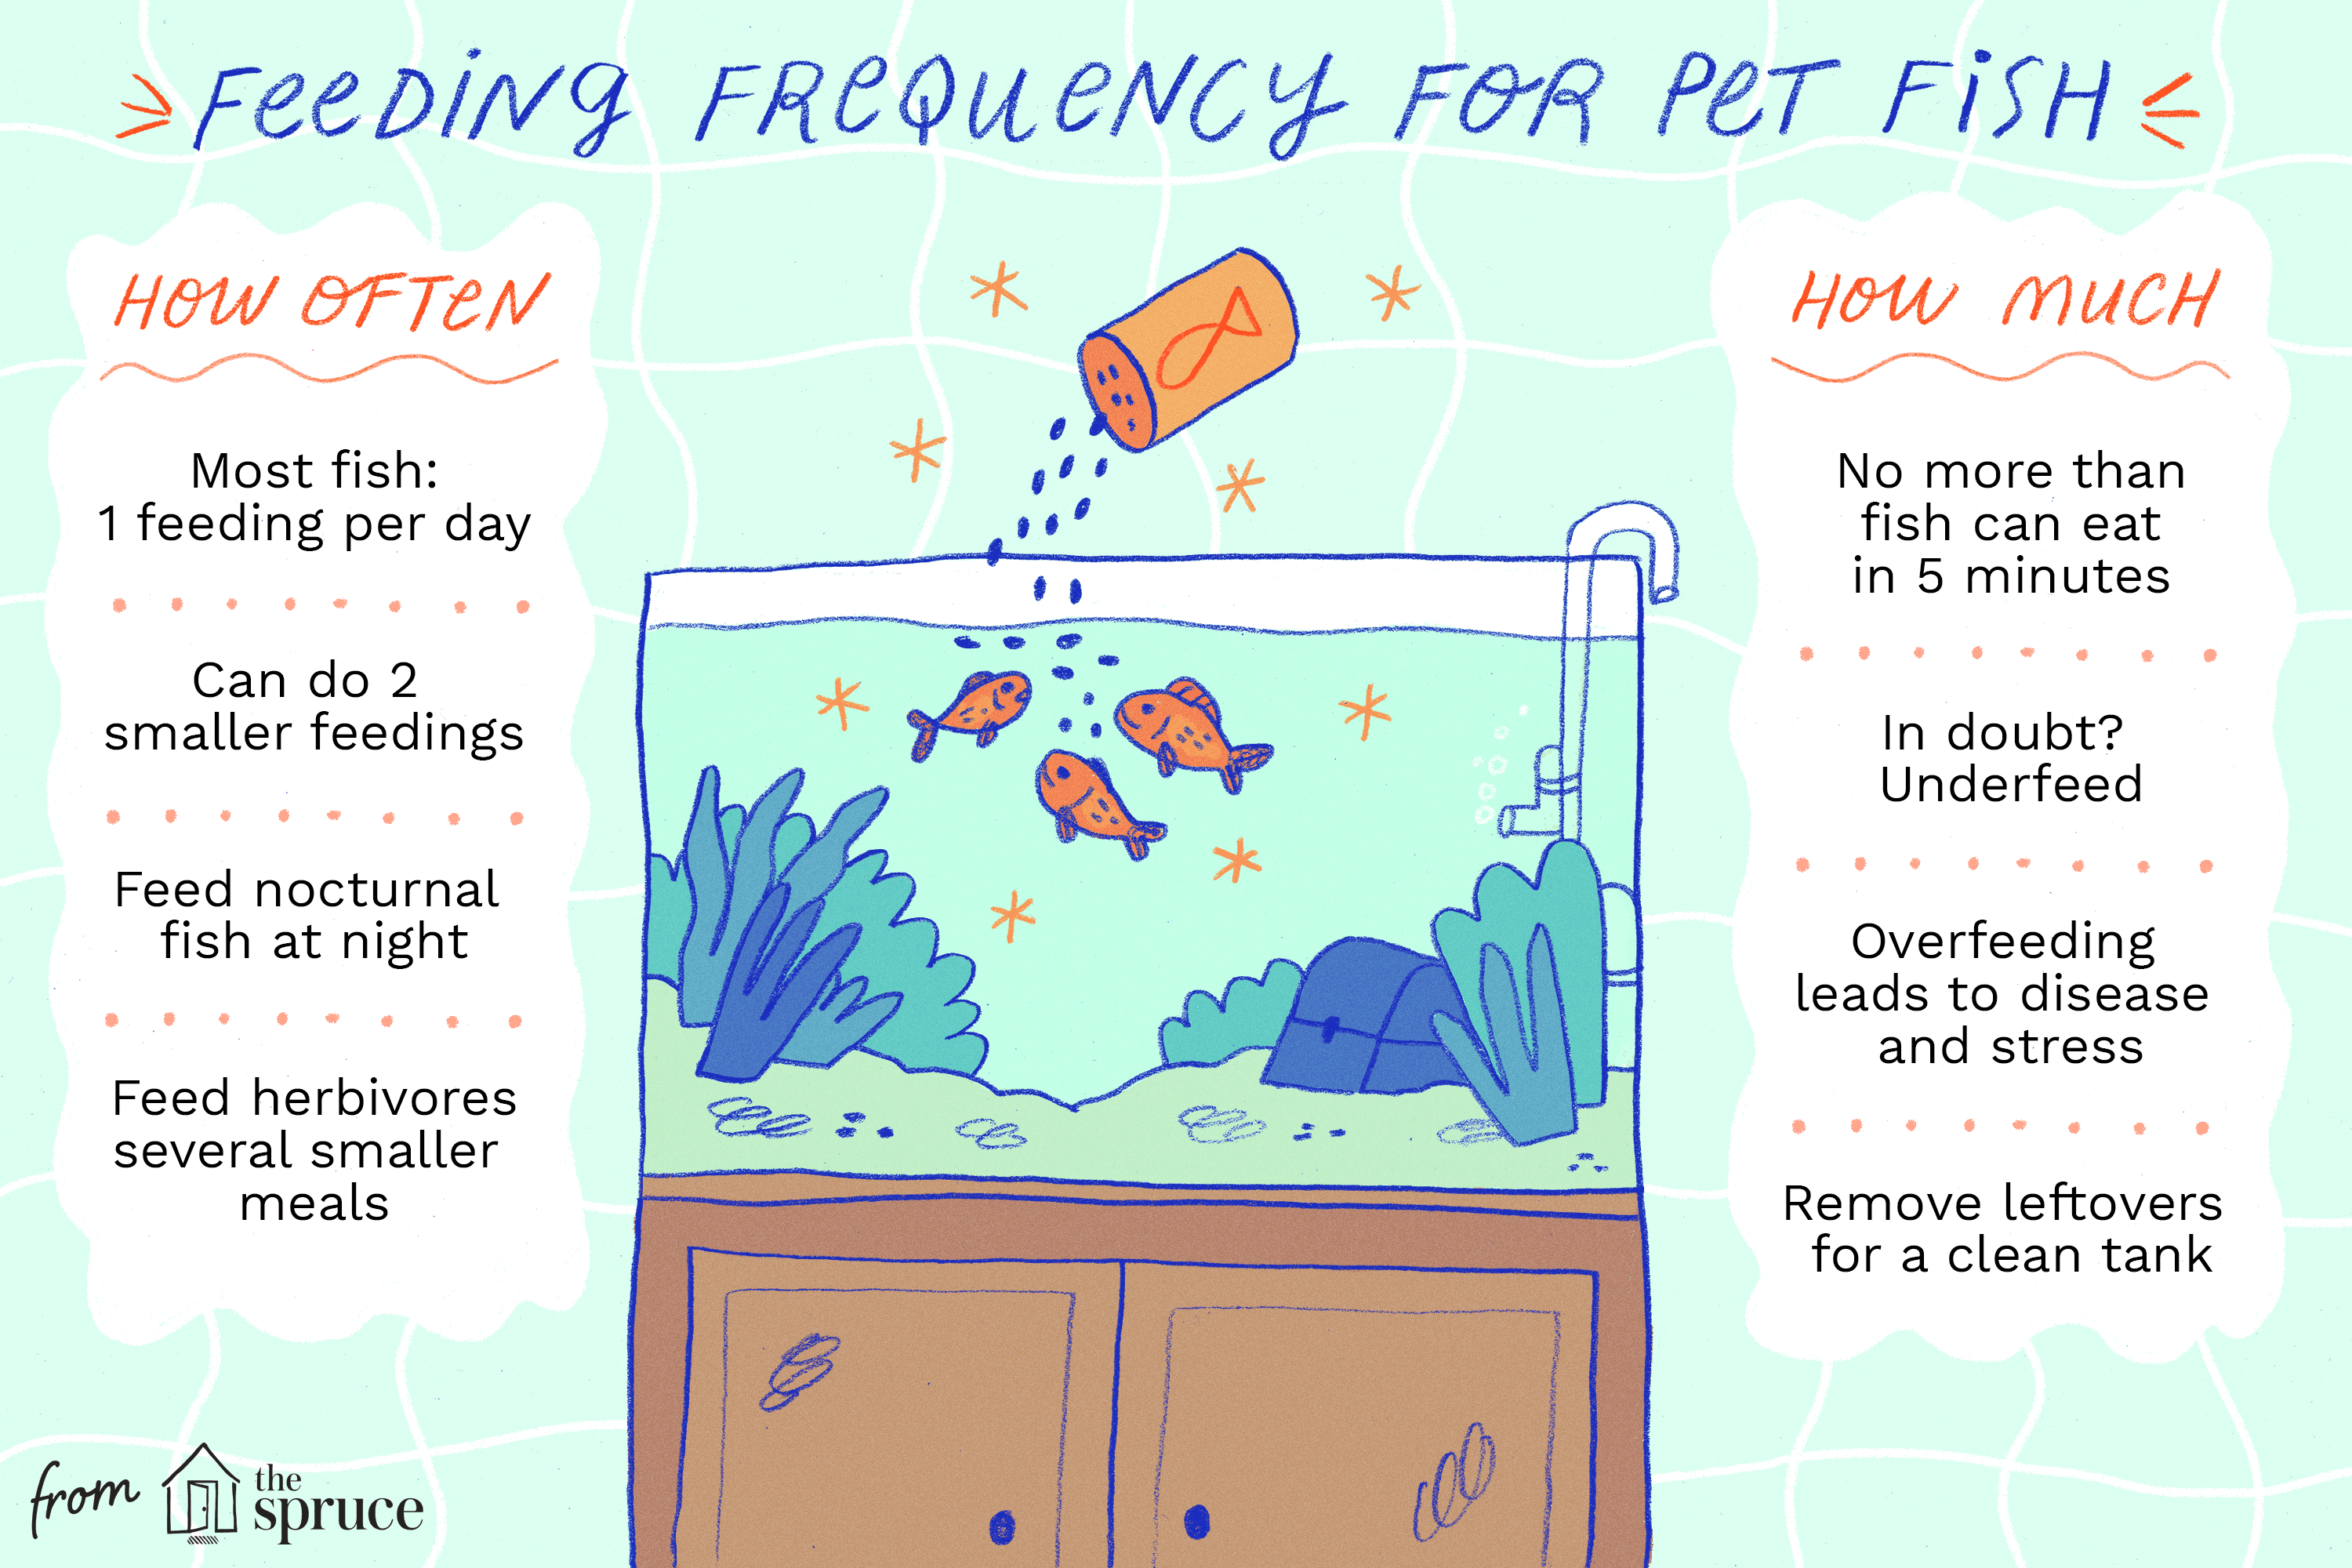 Illustration Of How Often And Much To Feed Fish